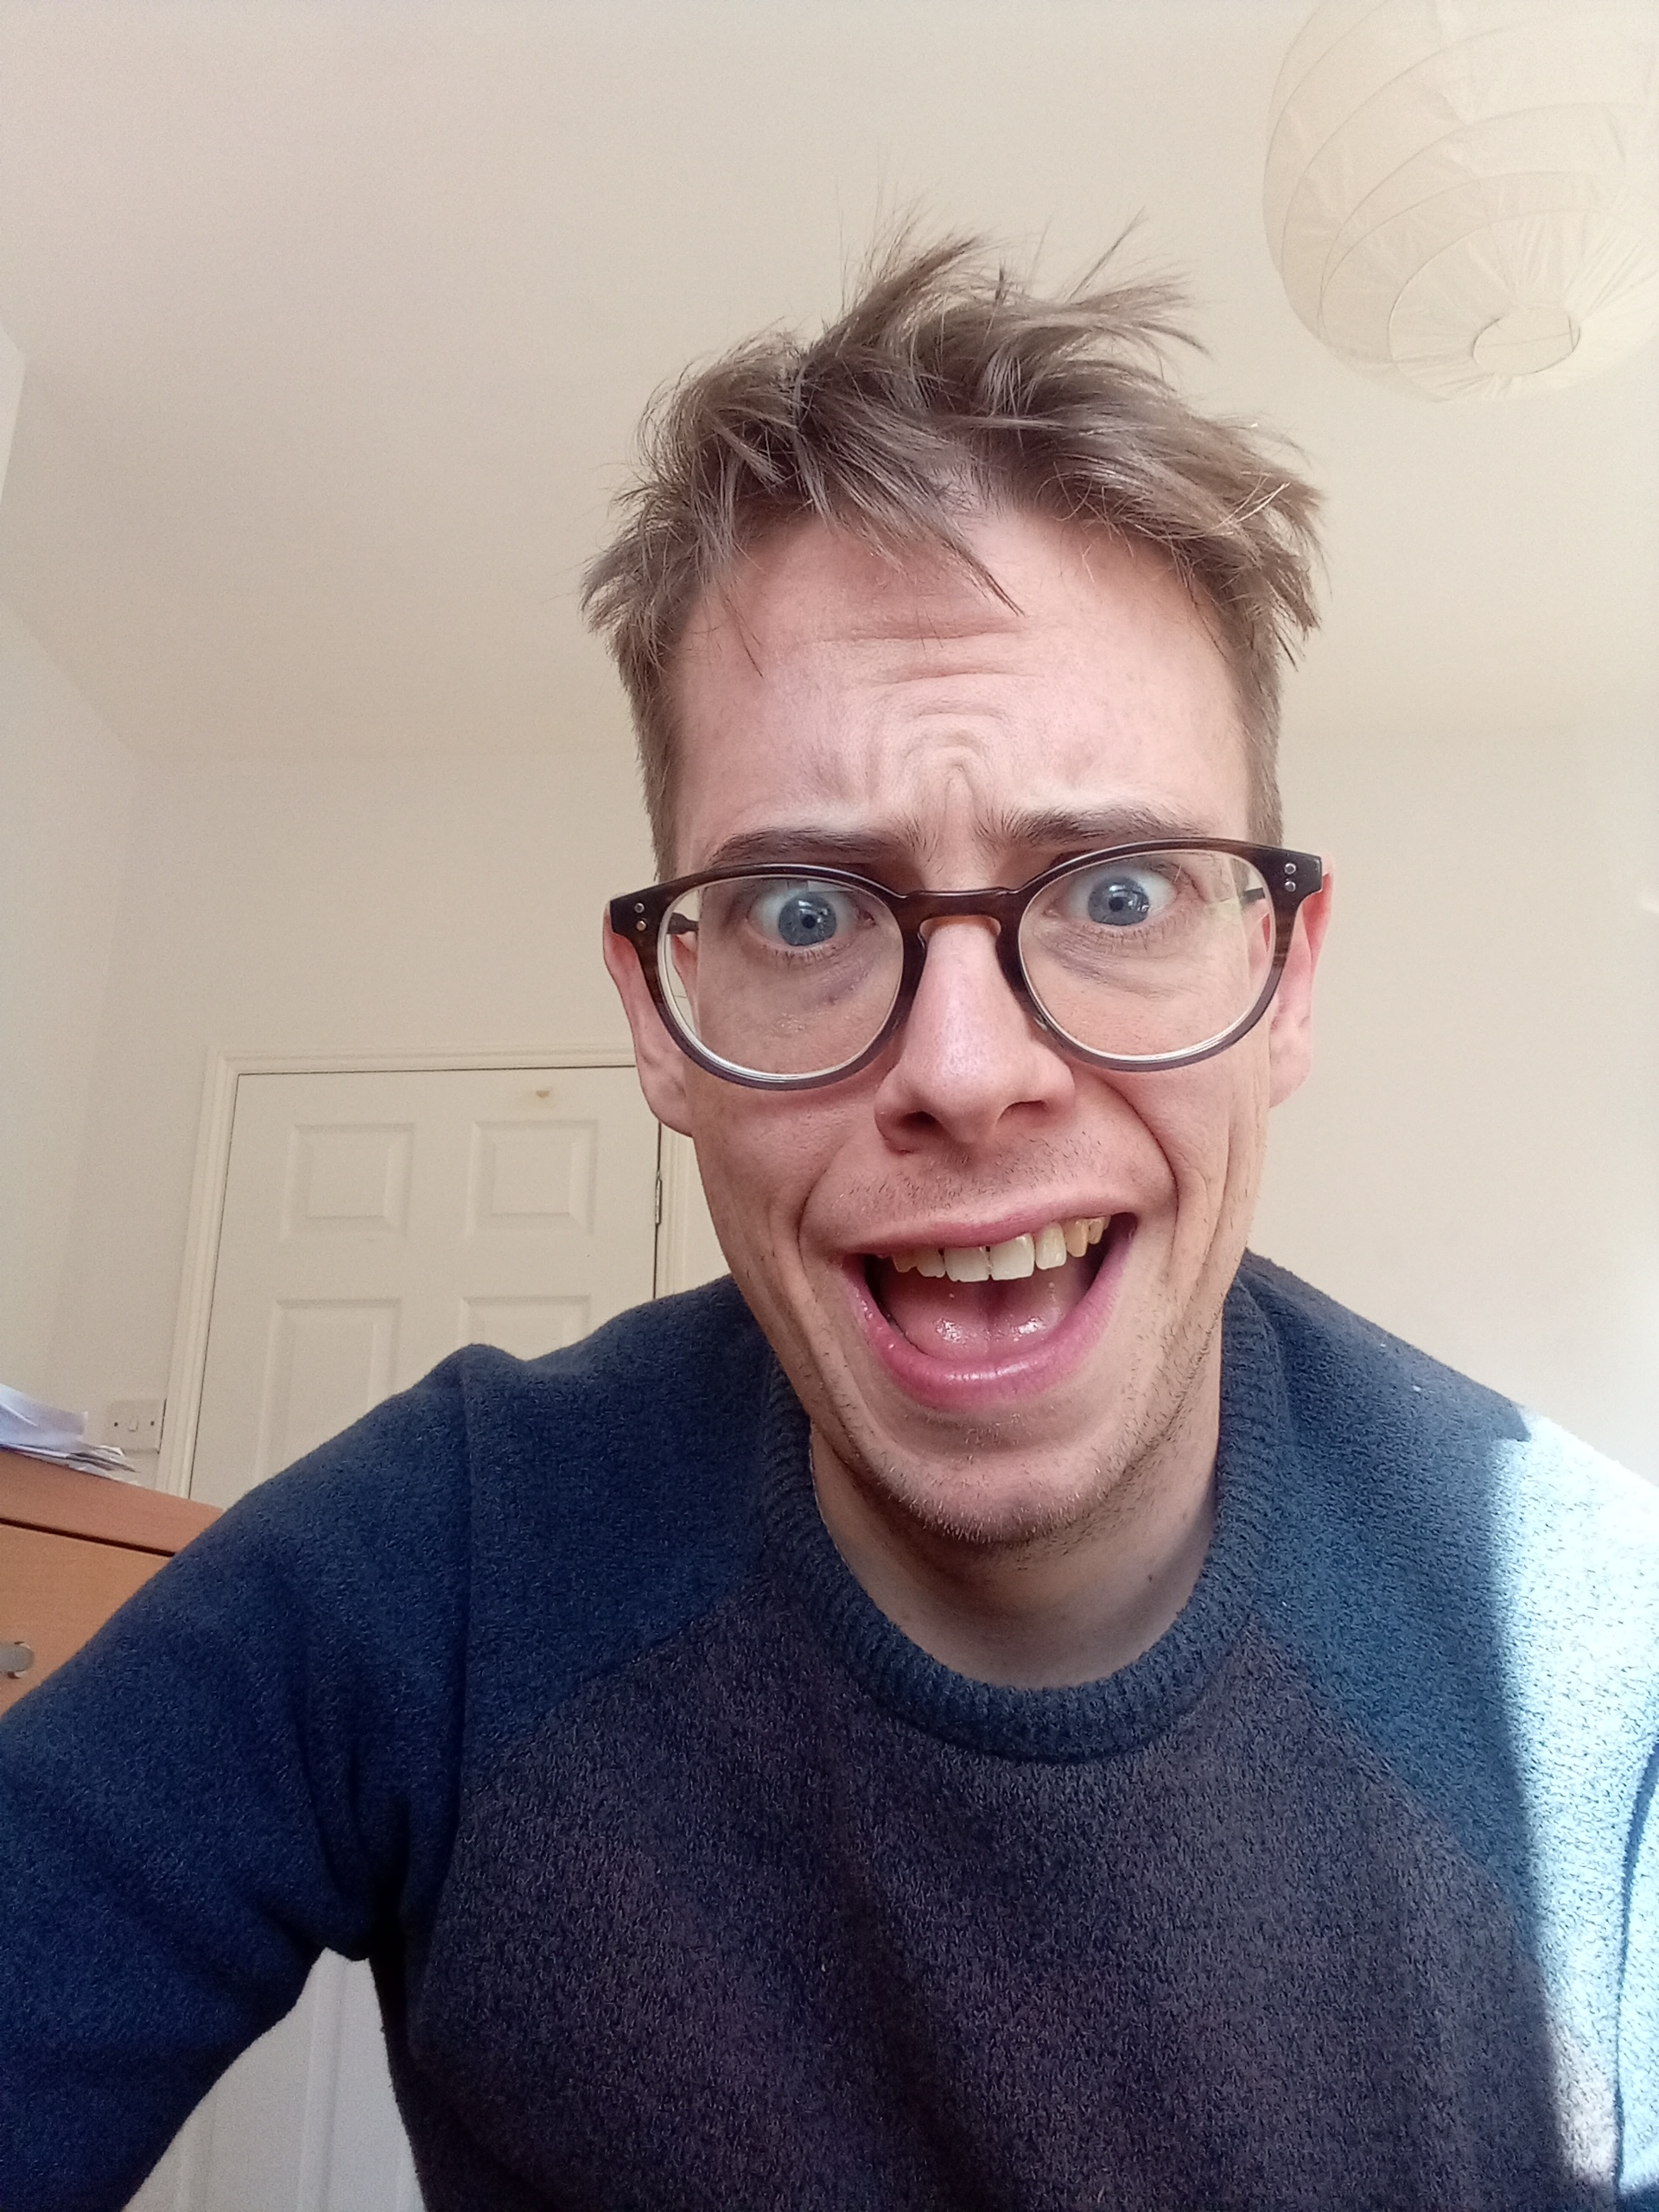 An image of Jorik, a white 33-year old autistic gay with soft hair, glasses and an expression of baffled hilarity on his face.